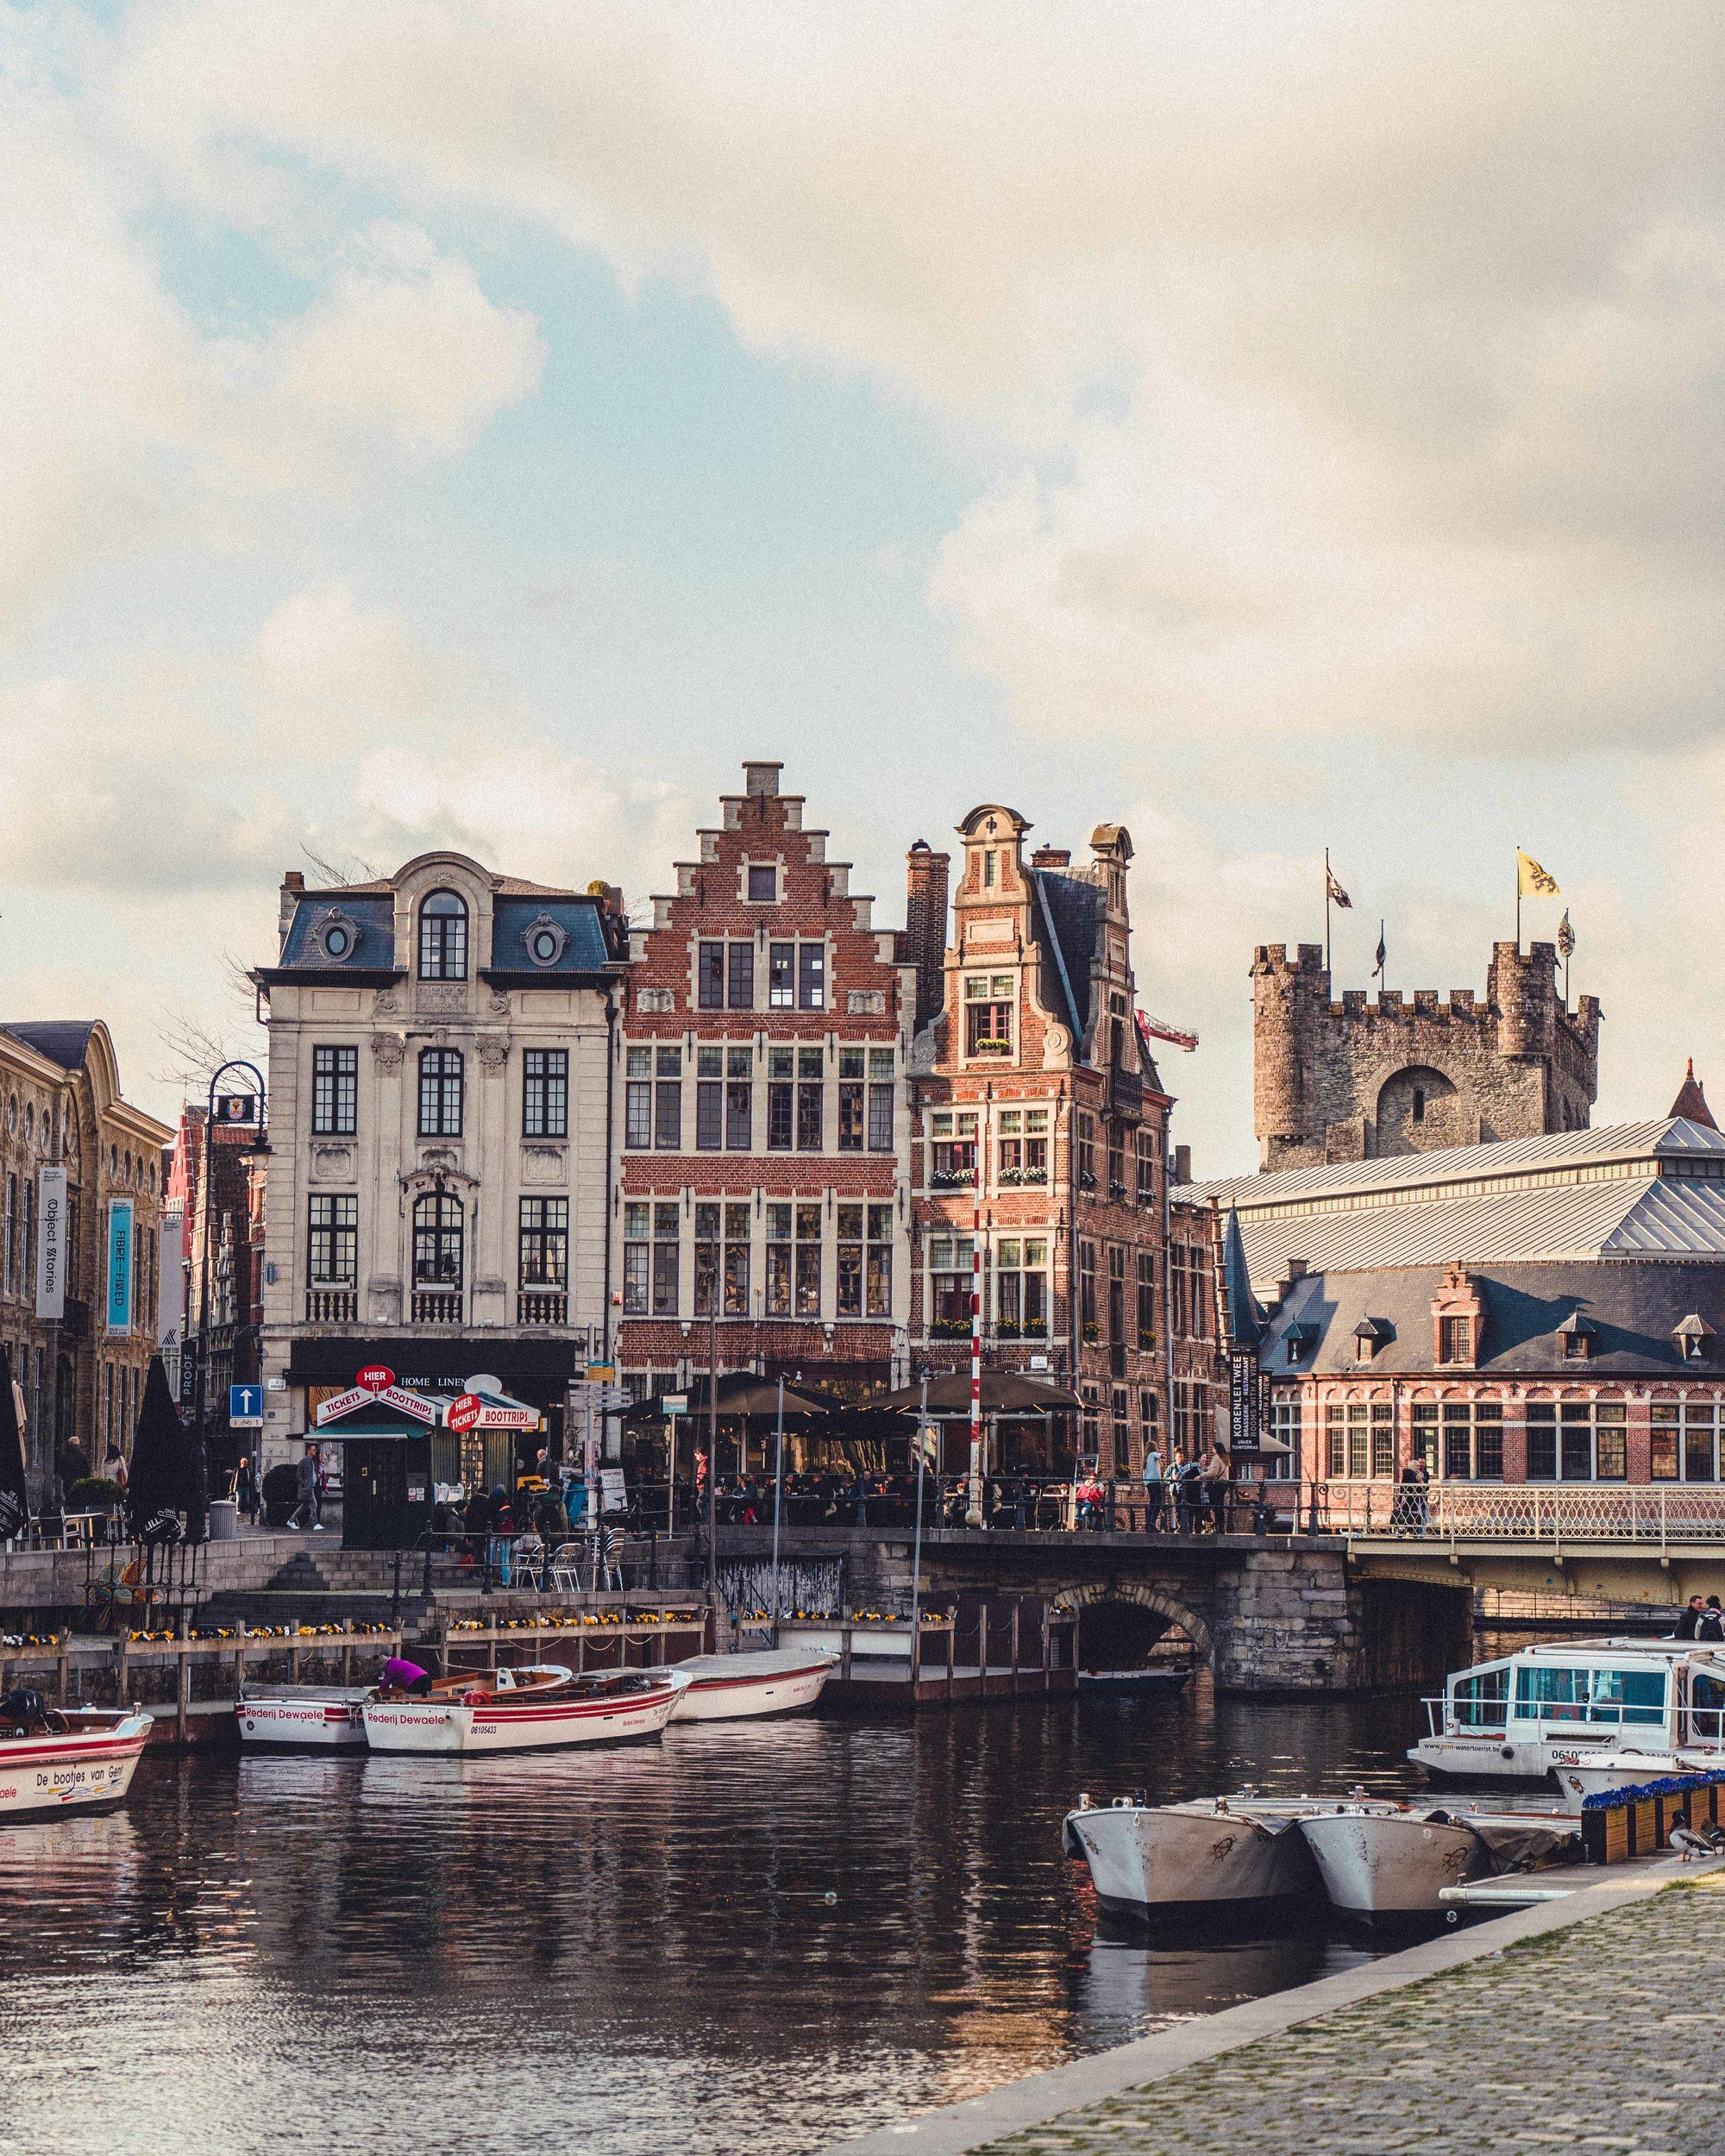 10+ Hidden Gems & Secret Spots in Belgium You Must Visit: The best Belgium unusual things to do and off the beaten path in Europe